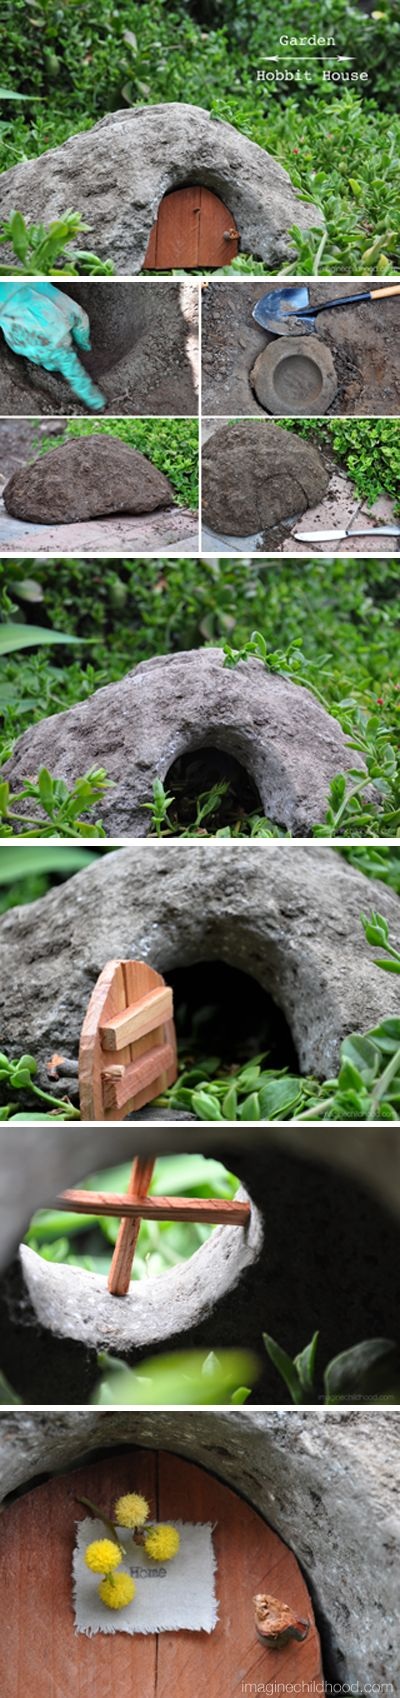 Garden Hobbit House Tutorial http://blog.imaginechildhood.com/imagine-childhood/2013/06/-garden-hobbit-house.html